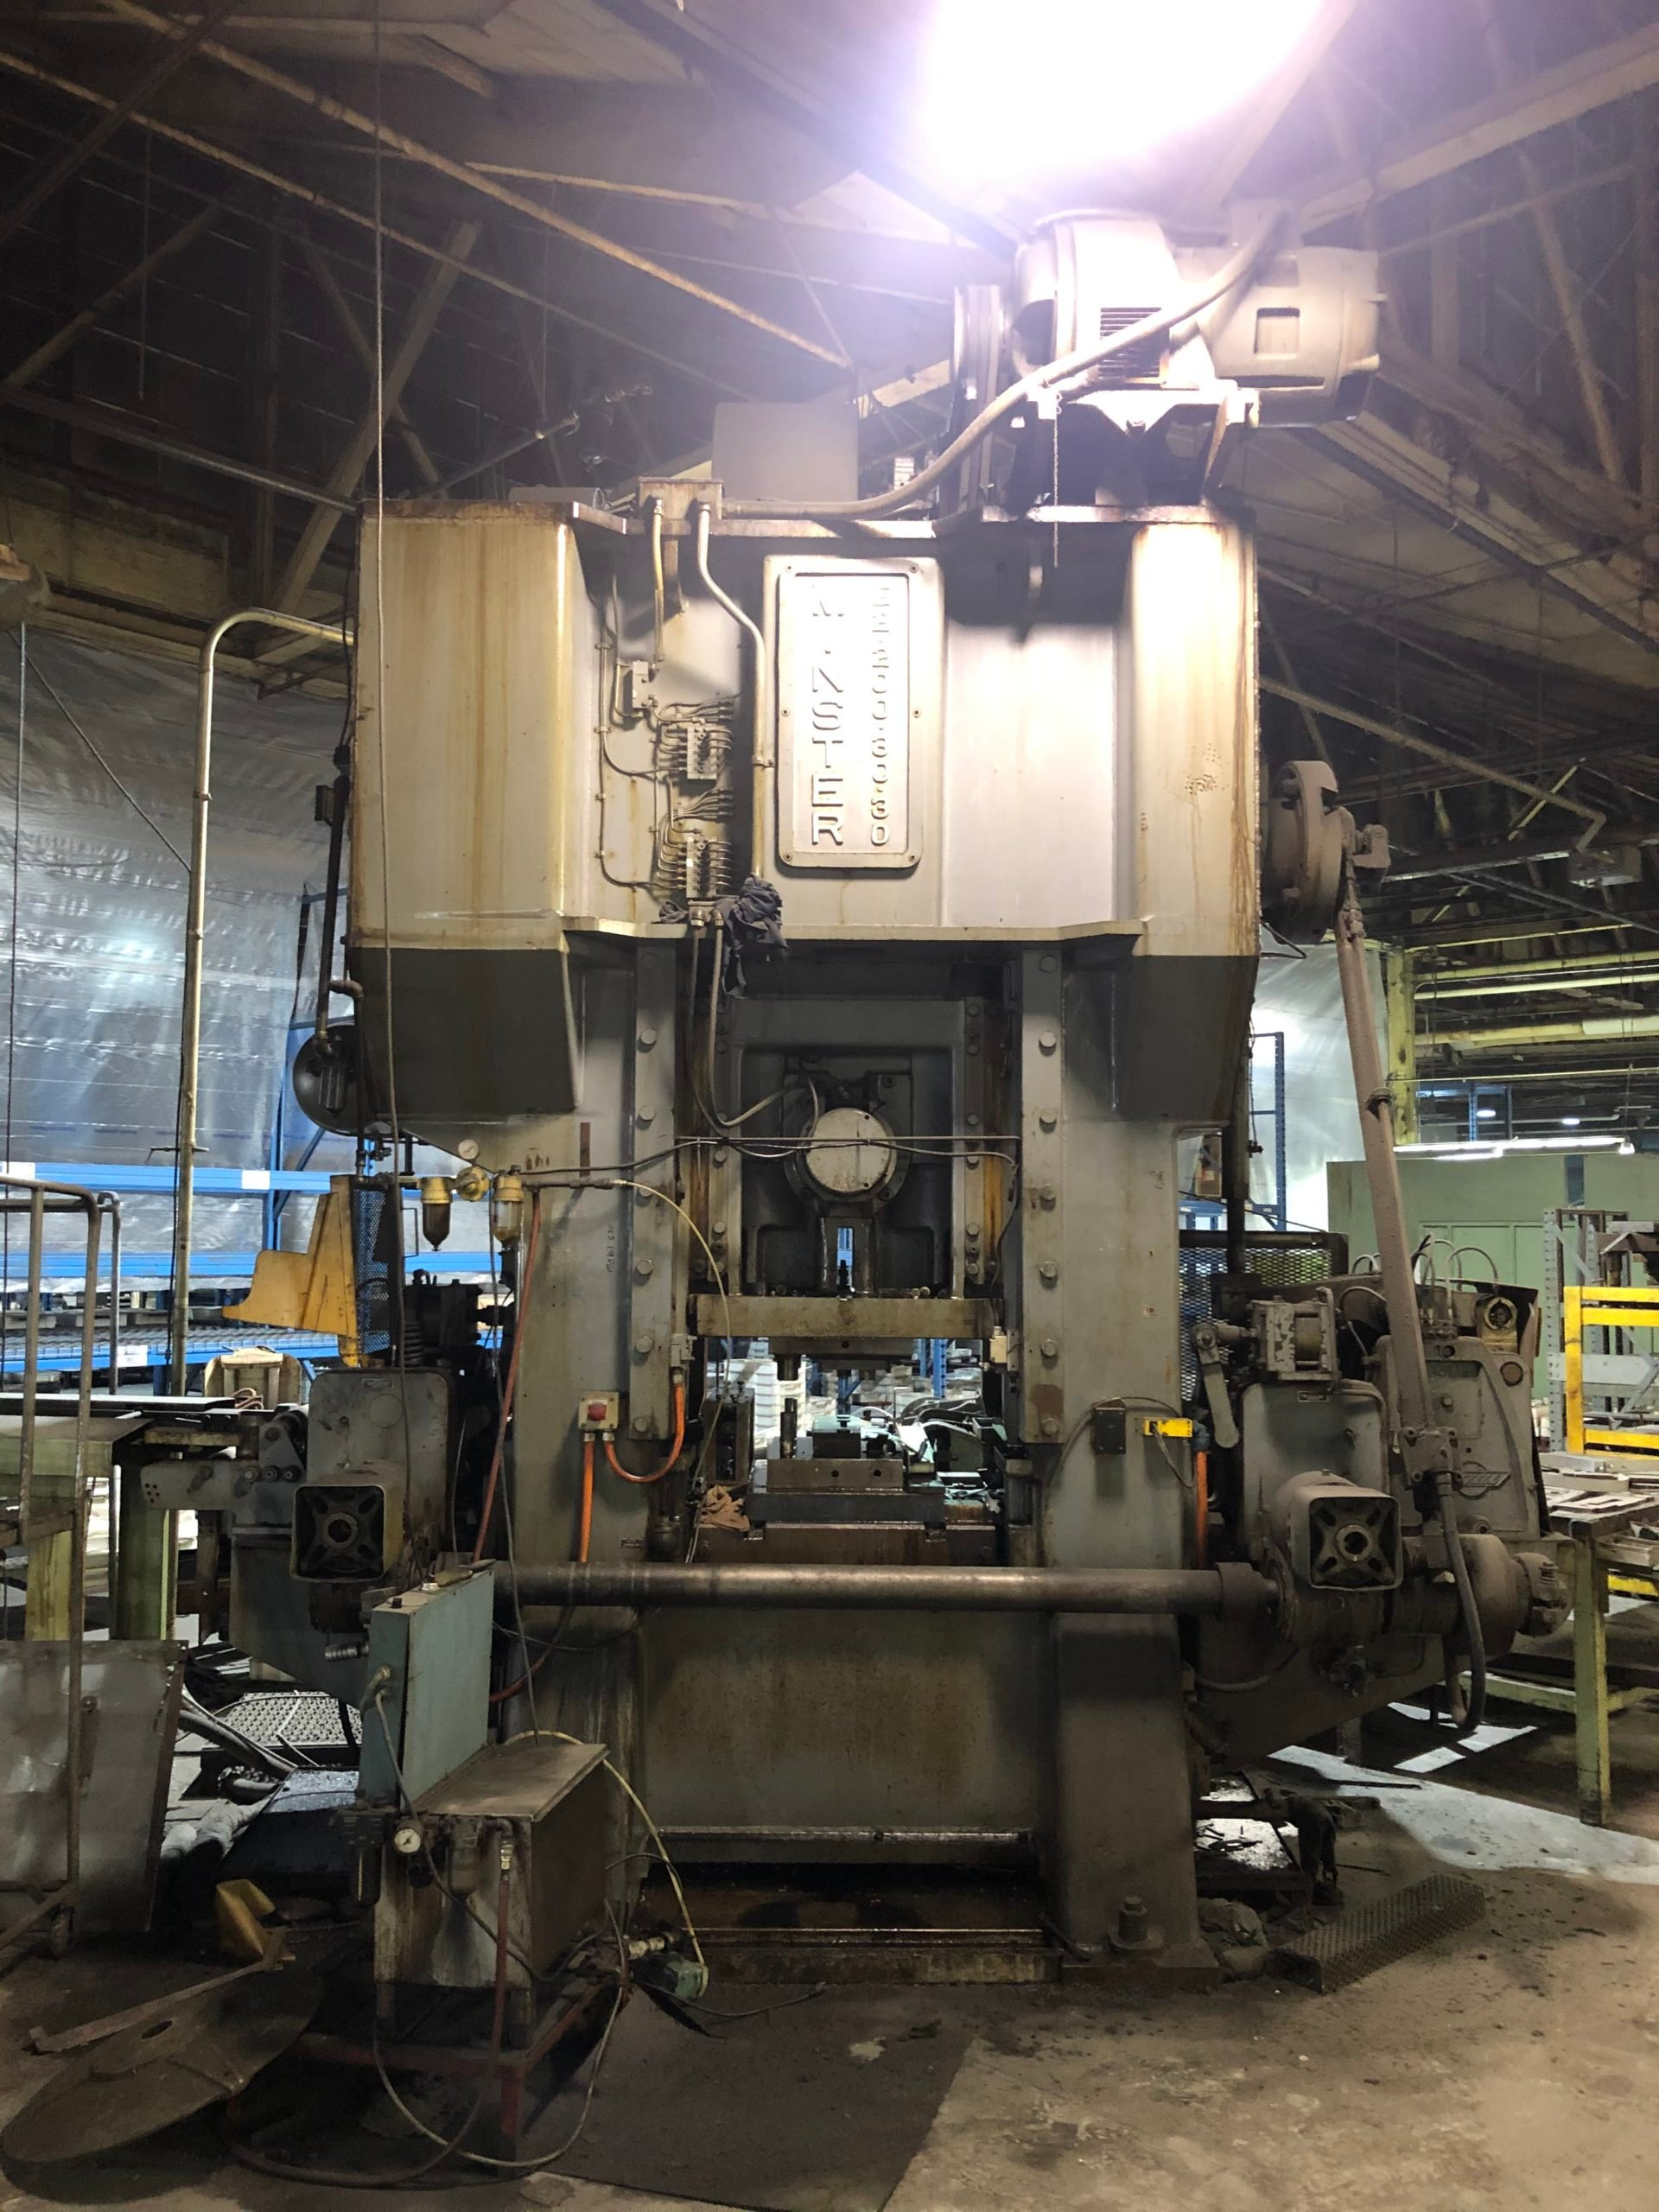 1966 Minster E2 - 200 Straight Side Production Press(#3862)